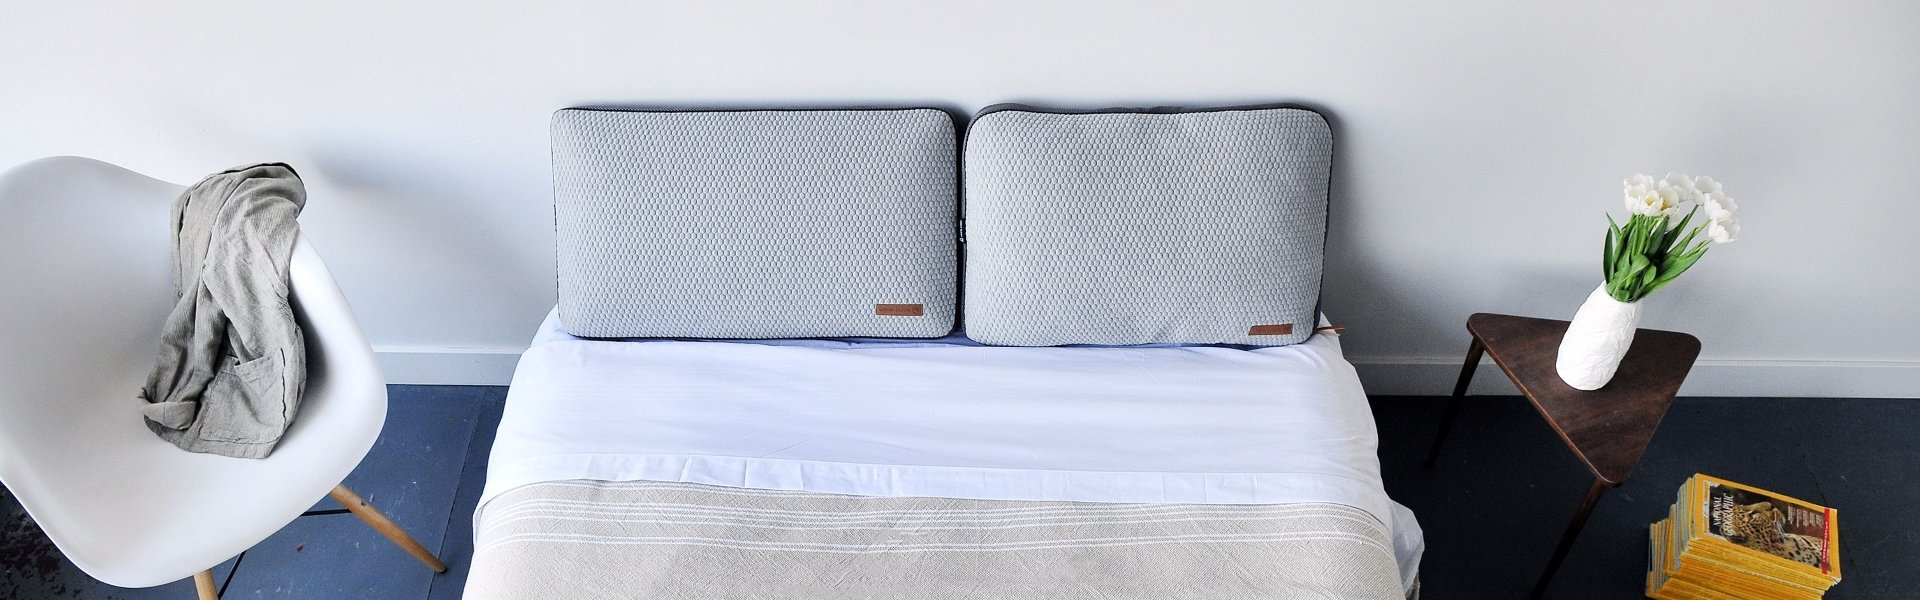 Best Thin Pillows Reviewed in Detail